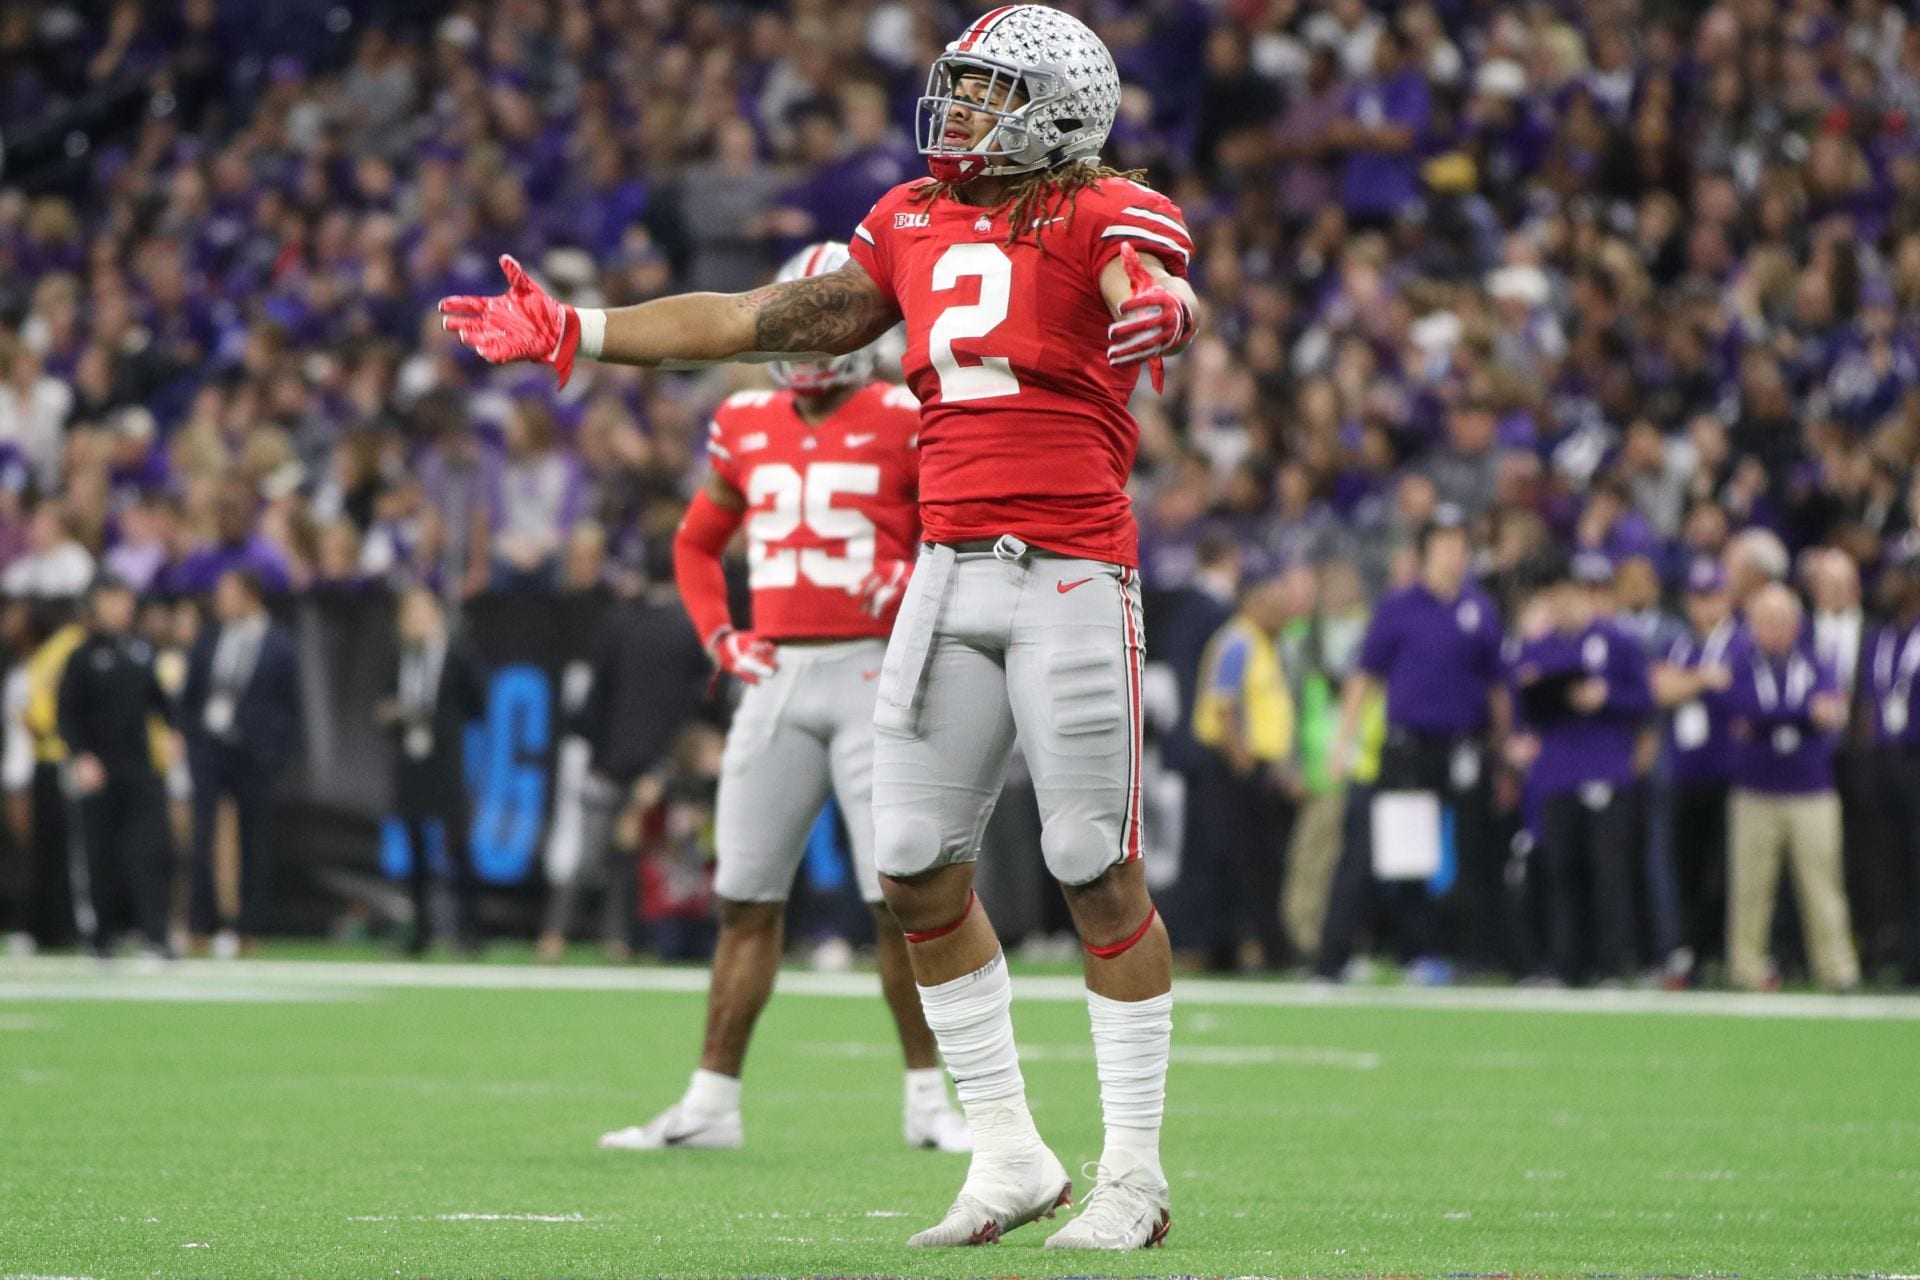 Football Chase Young Expected To Lead Ohio State Defense The Lantern